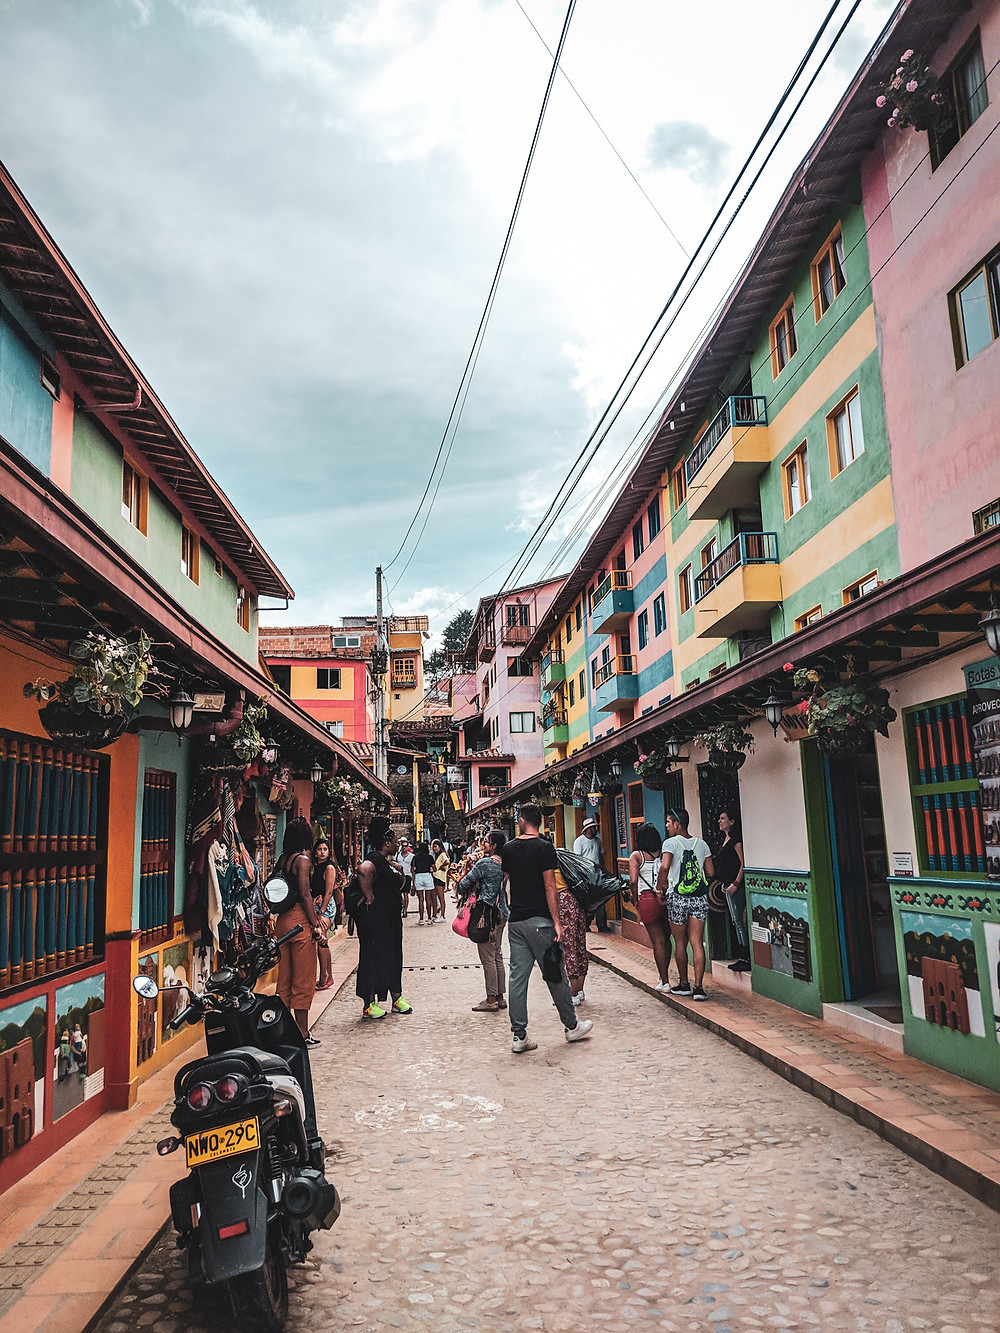 Tourism is becoming more popular because day trips are so easy in Guatapé, Colombia.